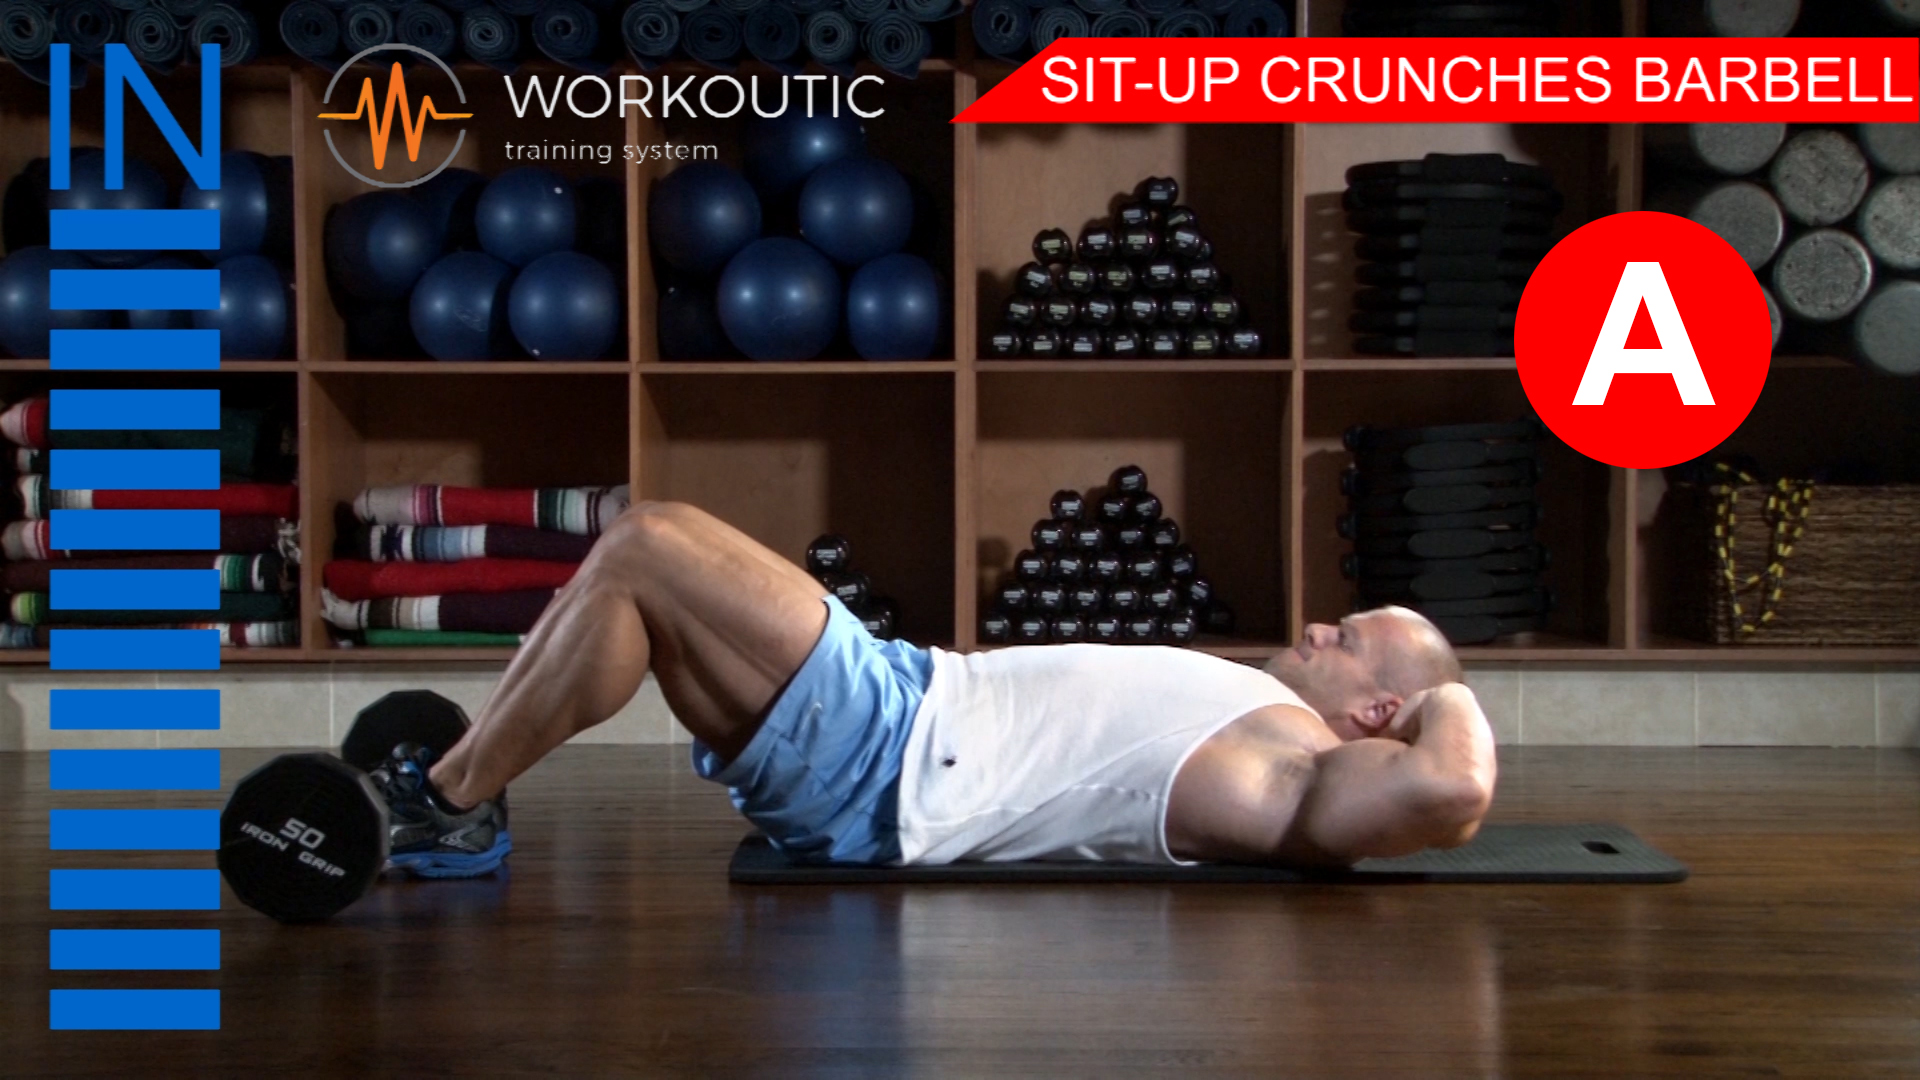 Abs Exercises - Workutic - 6 pack special - Sit-Up Crunches with Leg Support Inhale